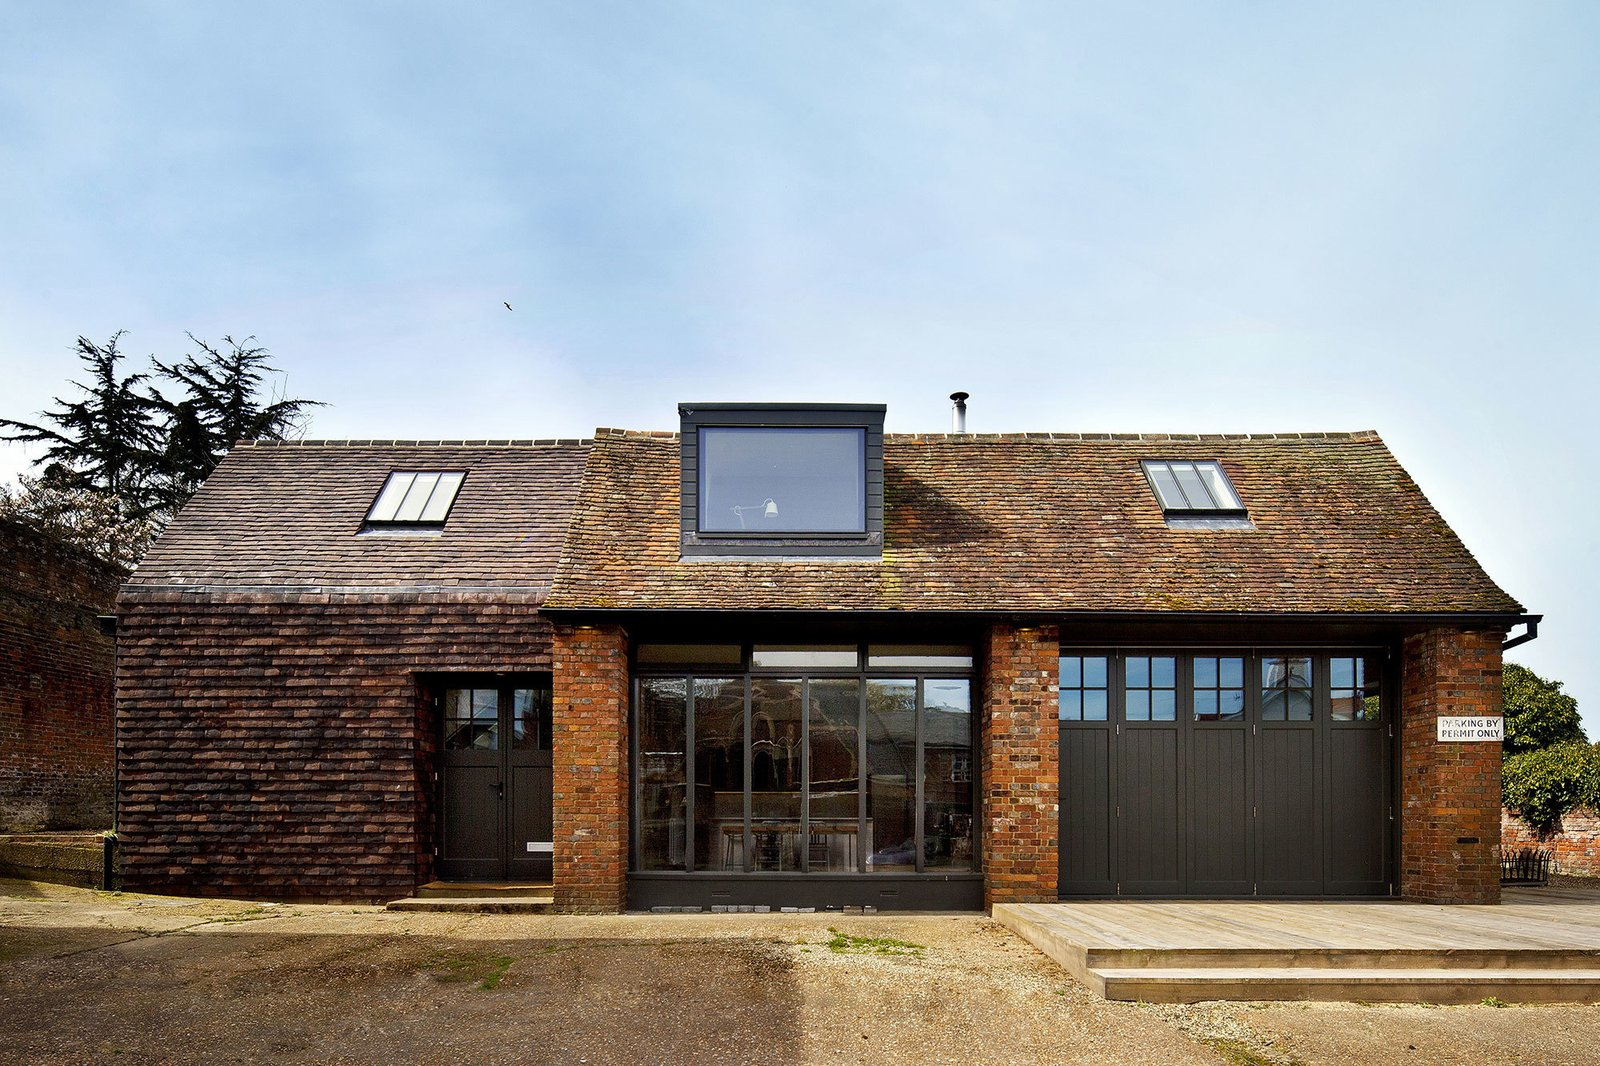 Photo 16 of 19 in 10 Dwell-Approved, New-Old Homes in the UK from Homes I like